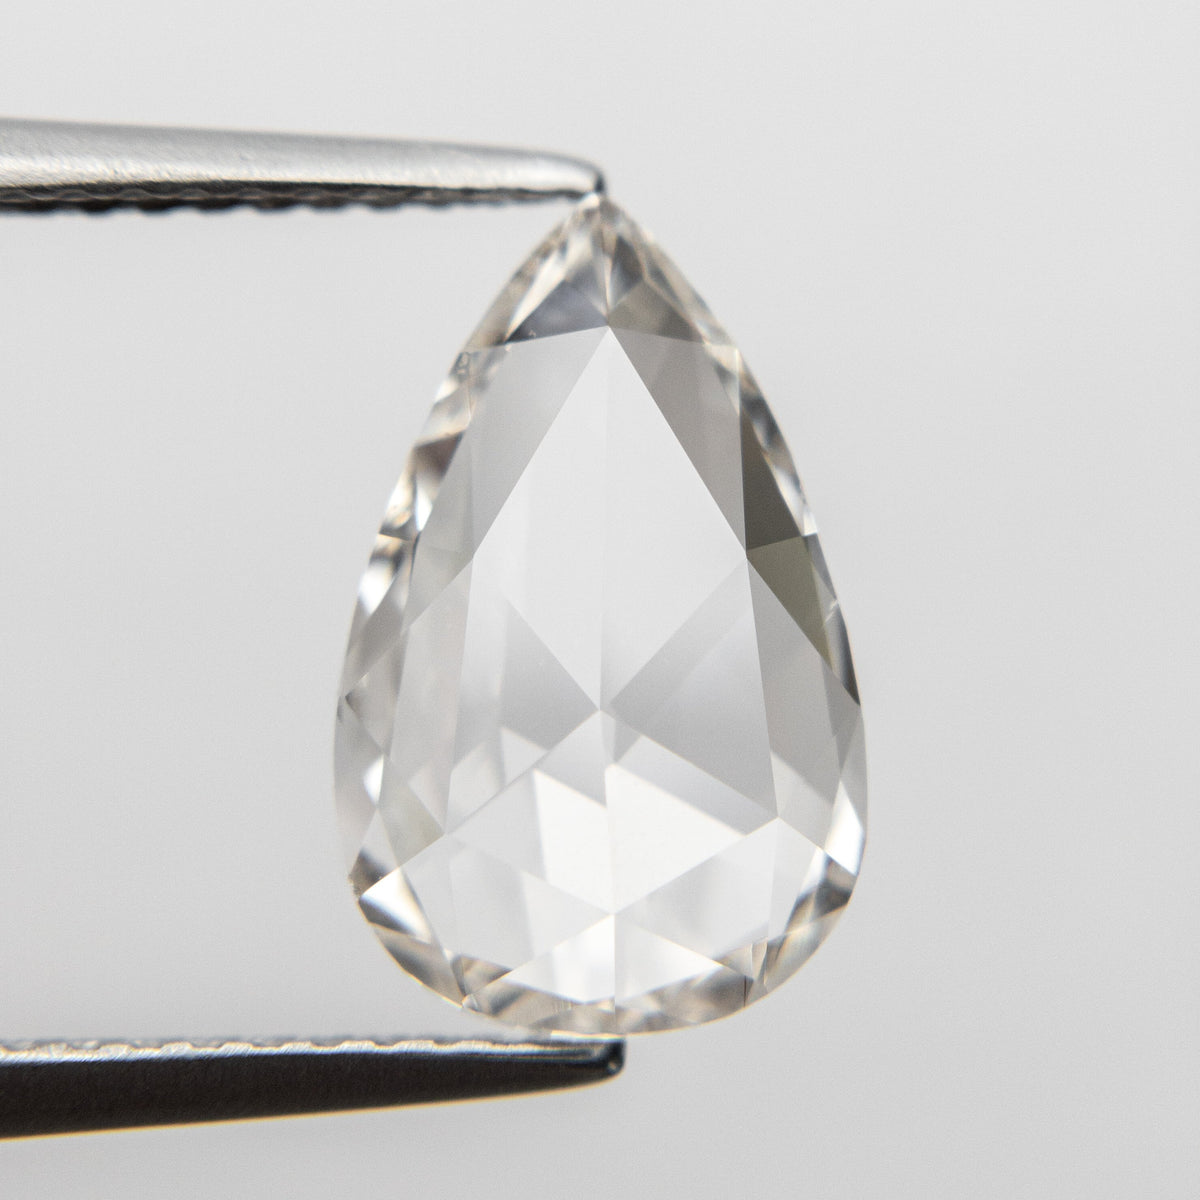 2.86ct 12.80x8.04x3.18mm VS2 K Pear Rosecut 18620-01